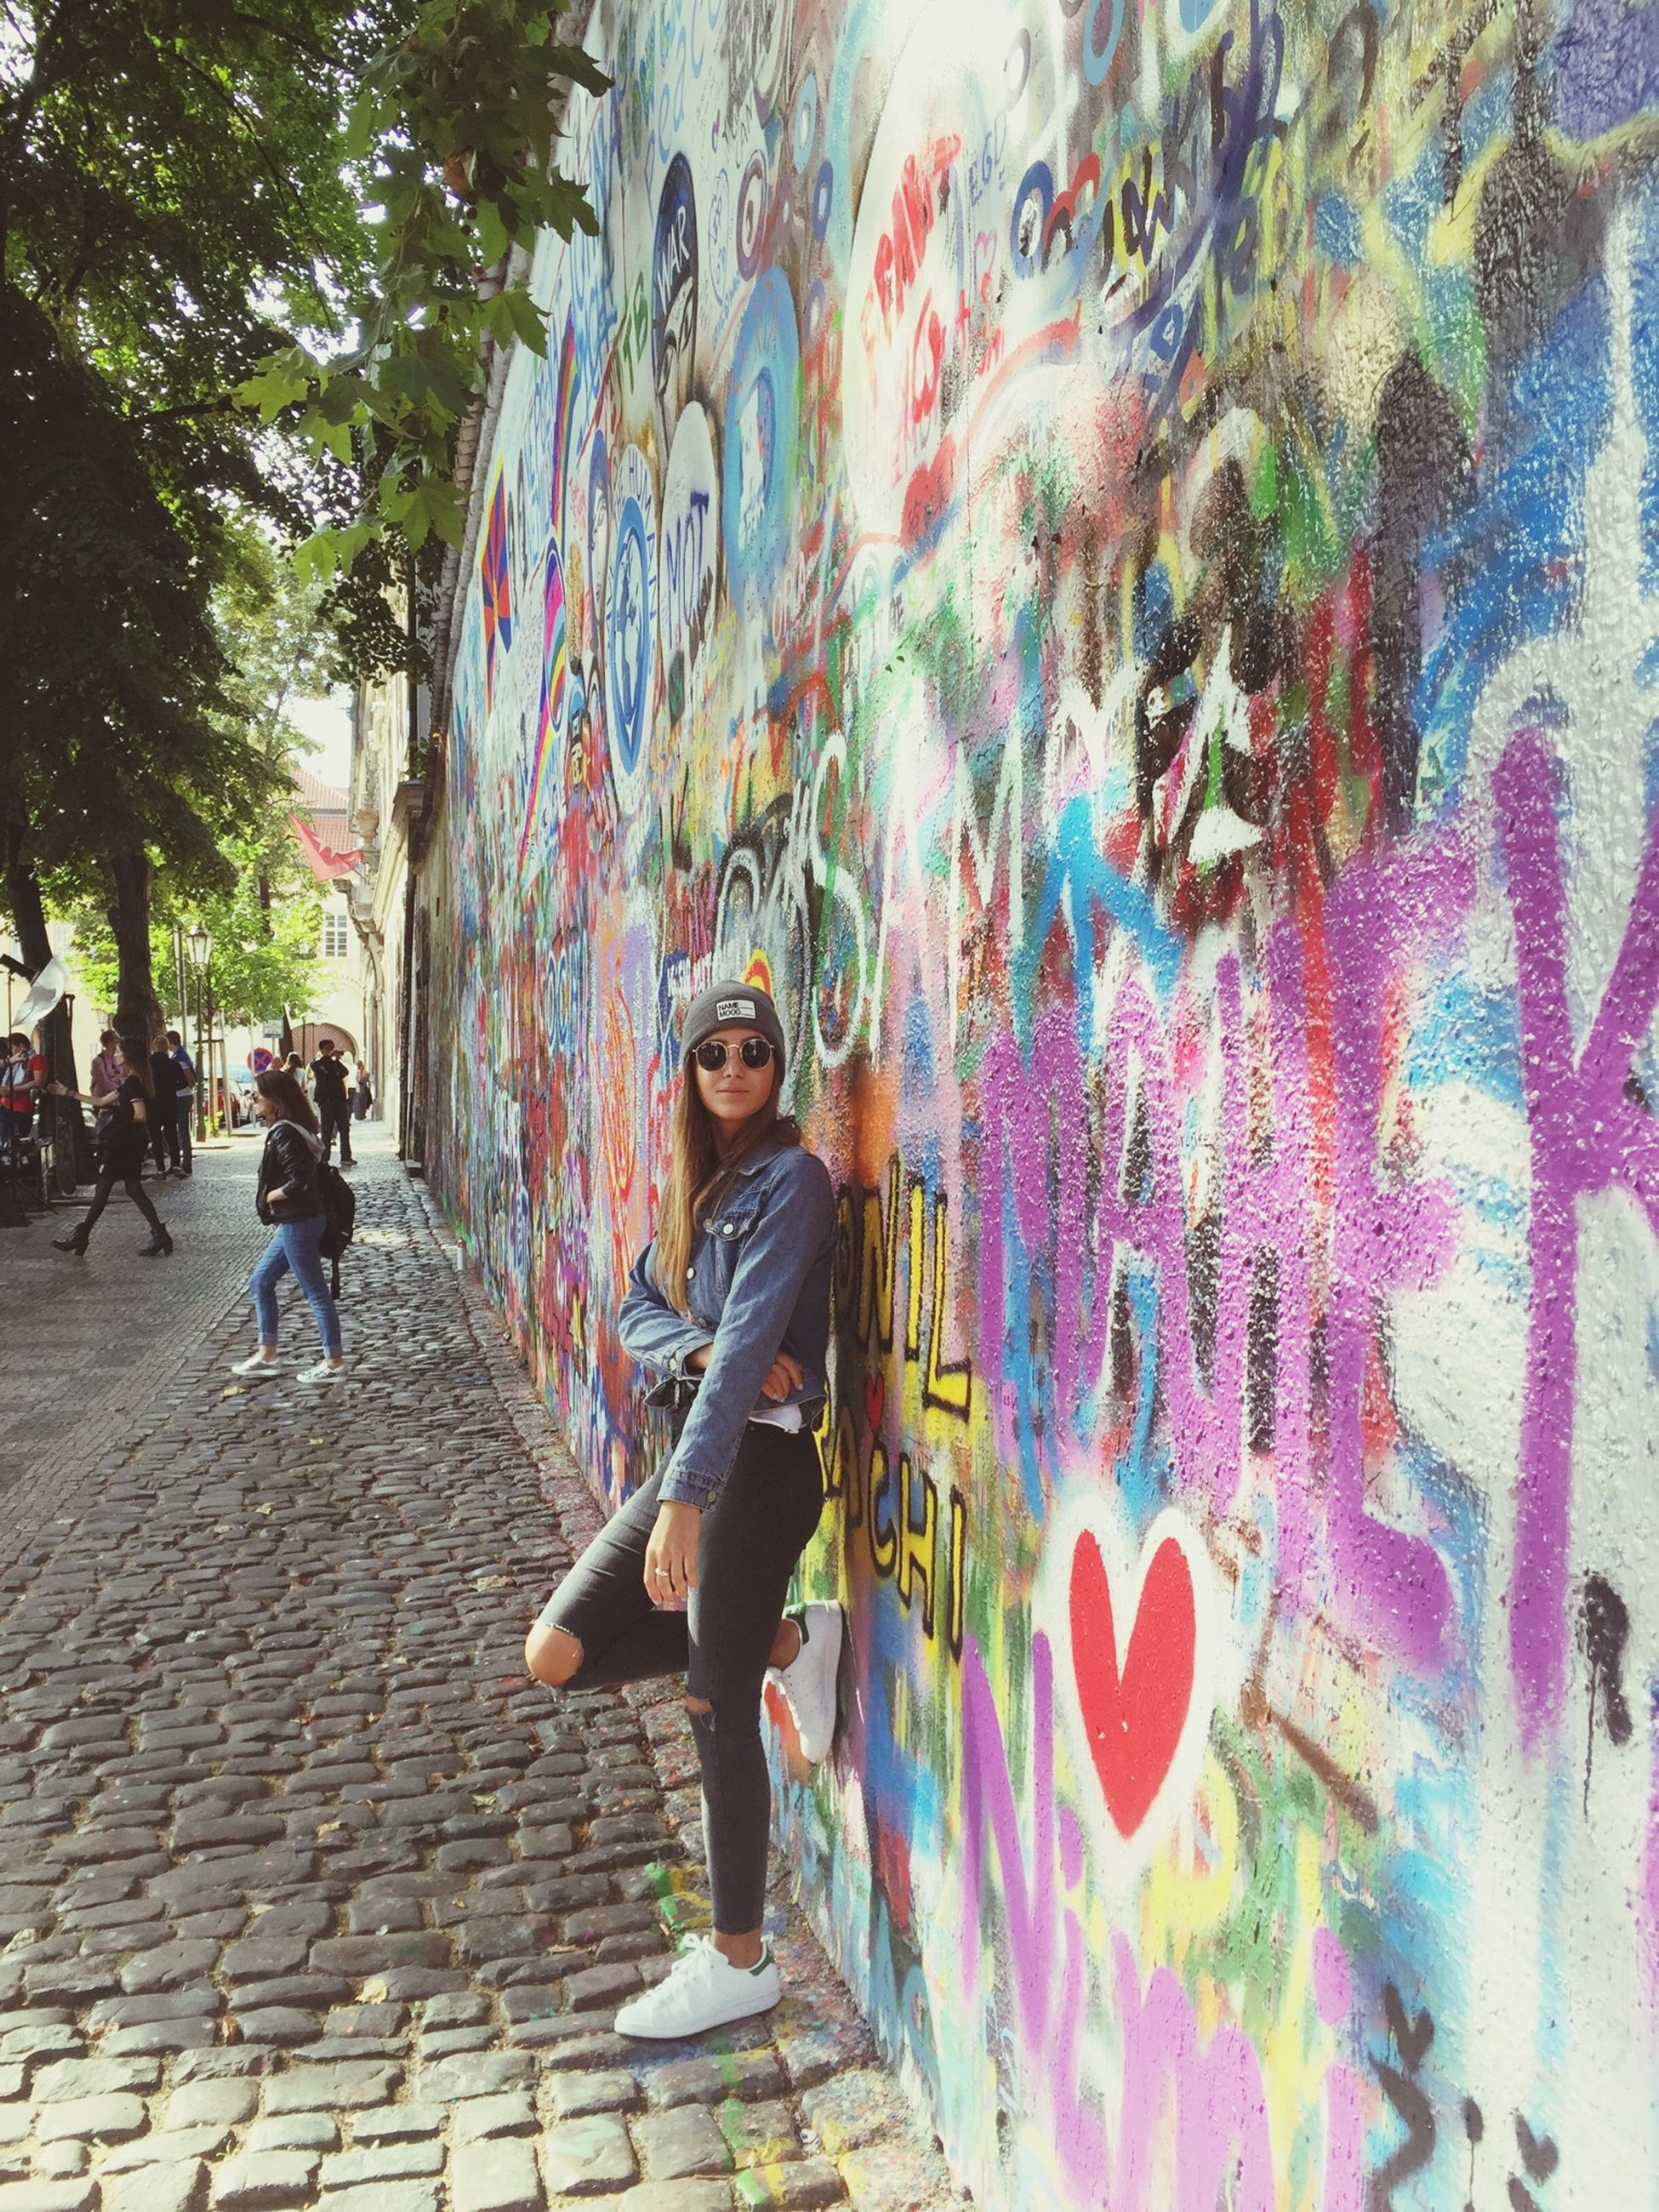 art, graffiti, creativity, art and craft, multi colored, wall - building feature, street art, built structure, architecture, full length, tree, vandalism, painting, building exterior, person, day, colorful, city life, outdoors, footpath, artwork